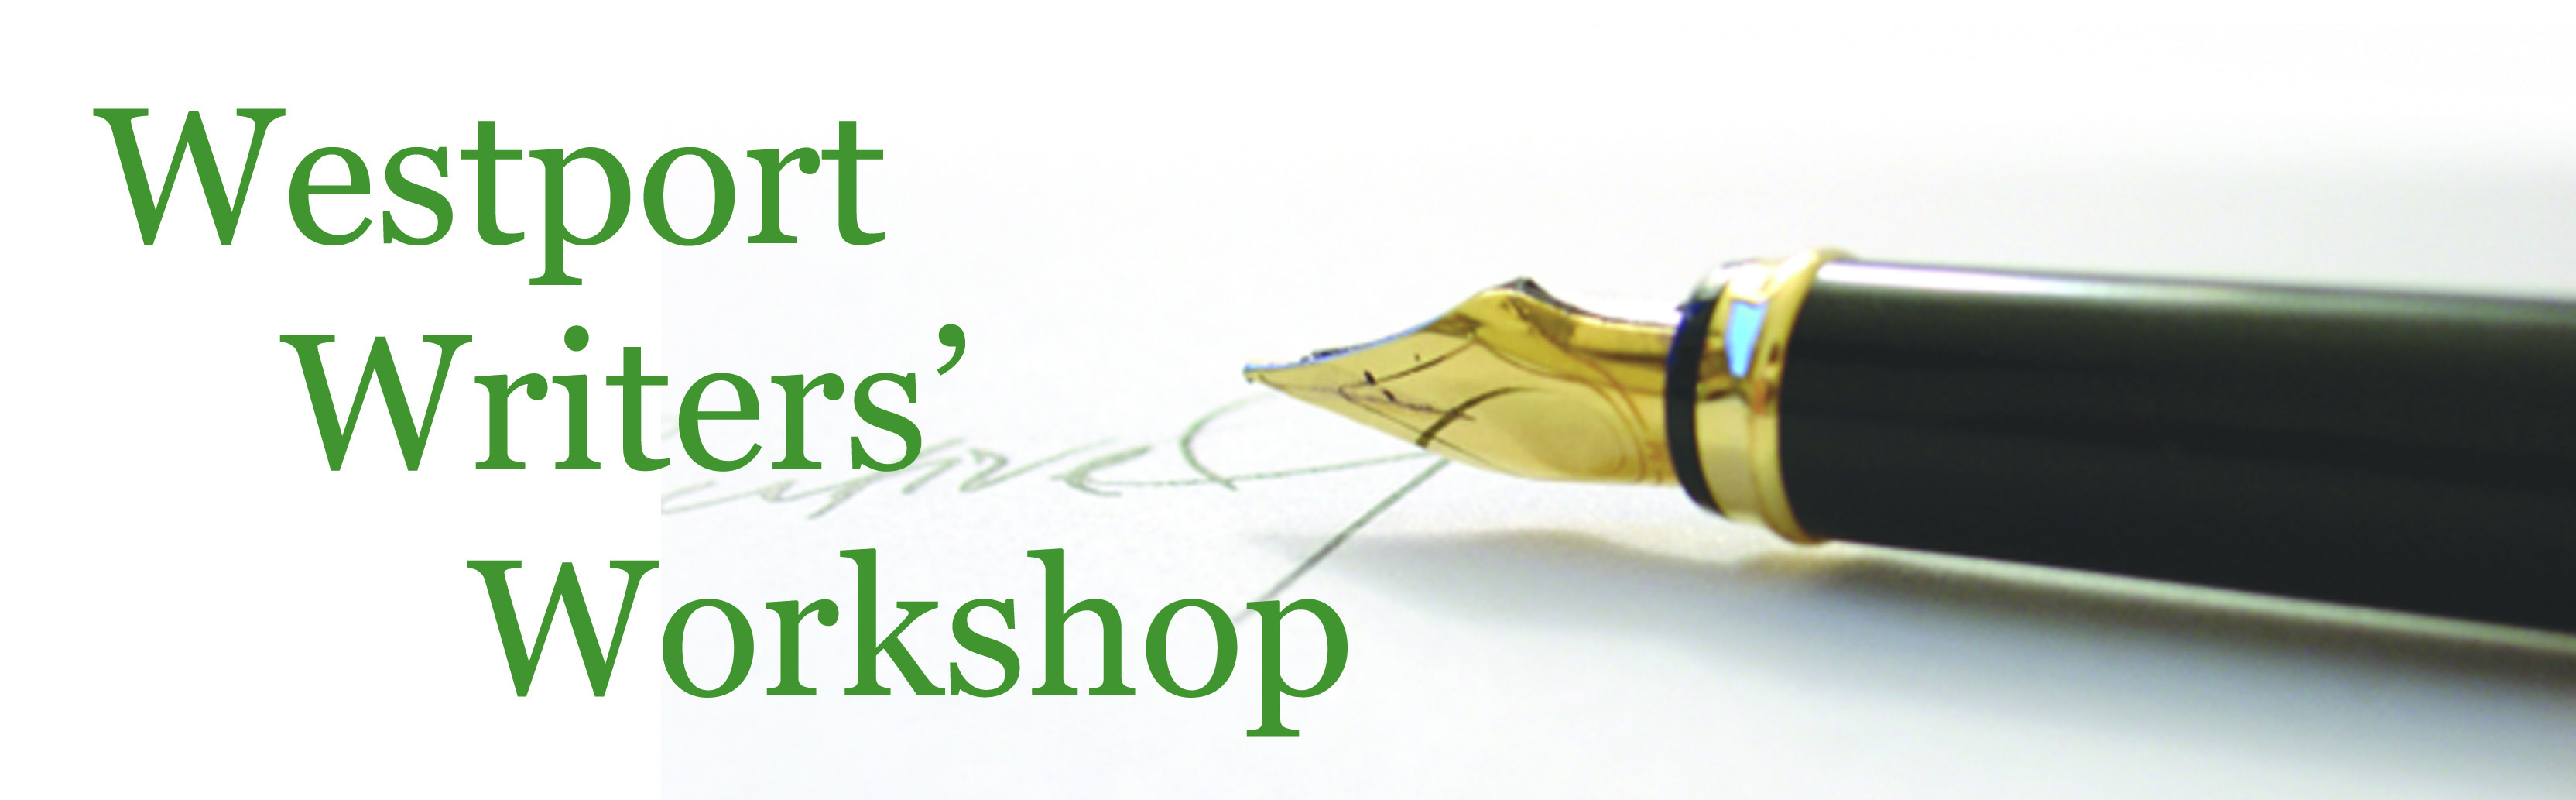 Westport Writers' Workshop LLC